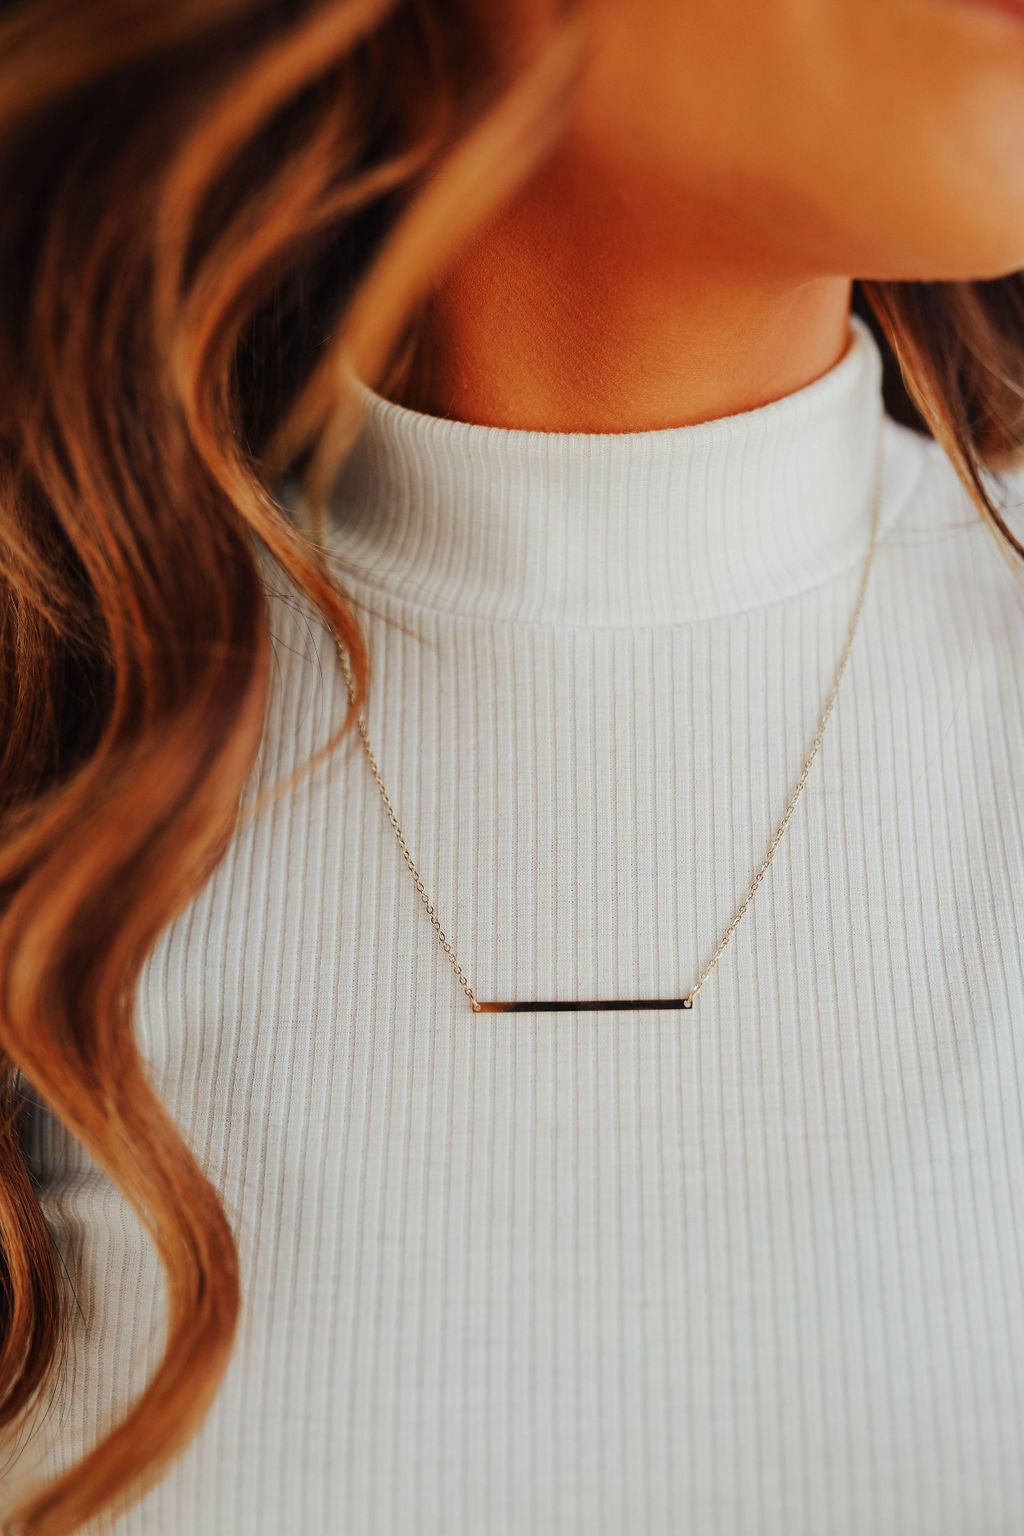 THE THIN BAR NECKLACE IN GOLD